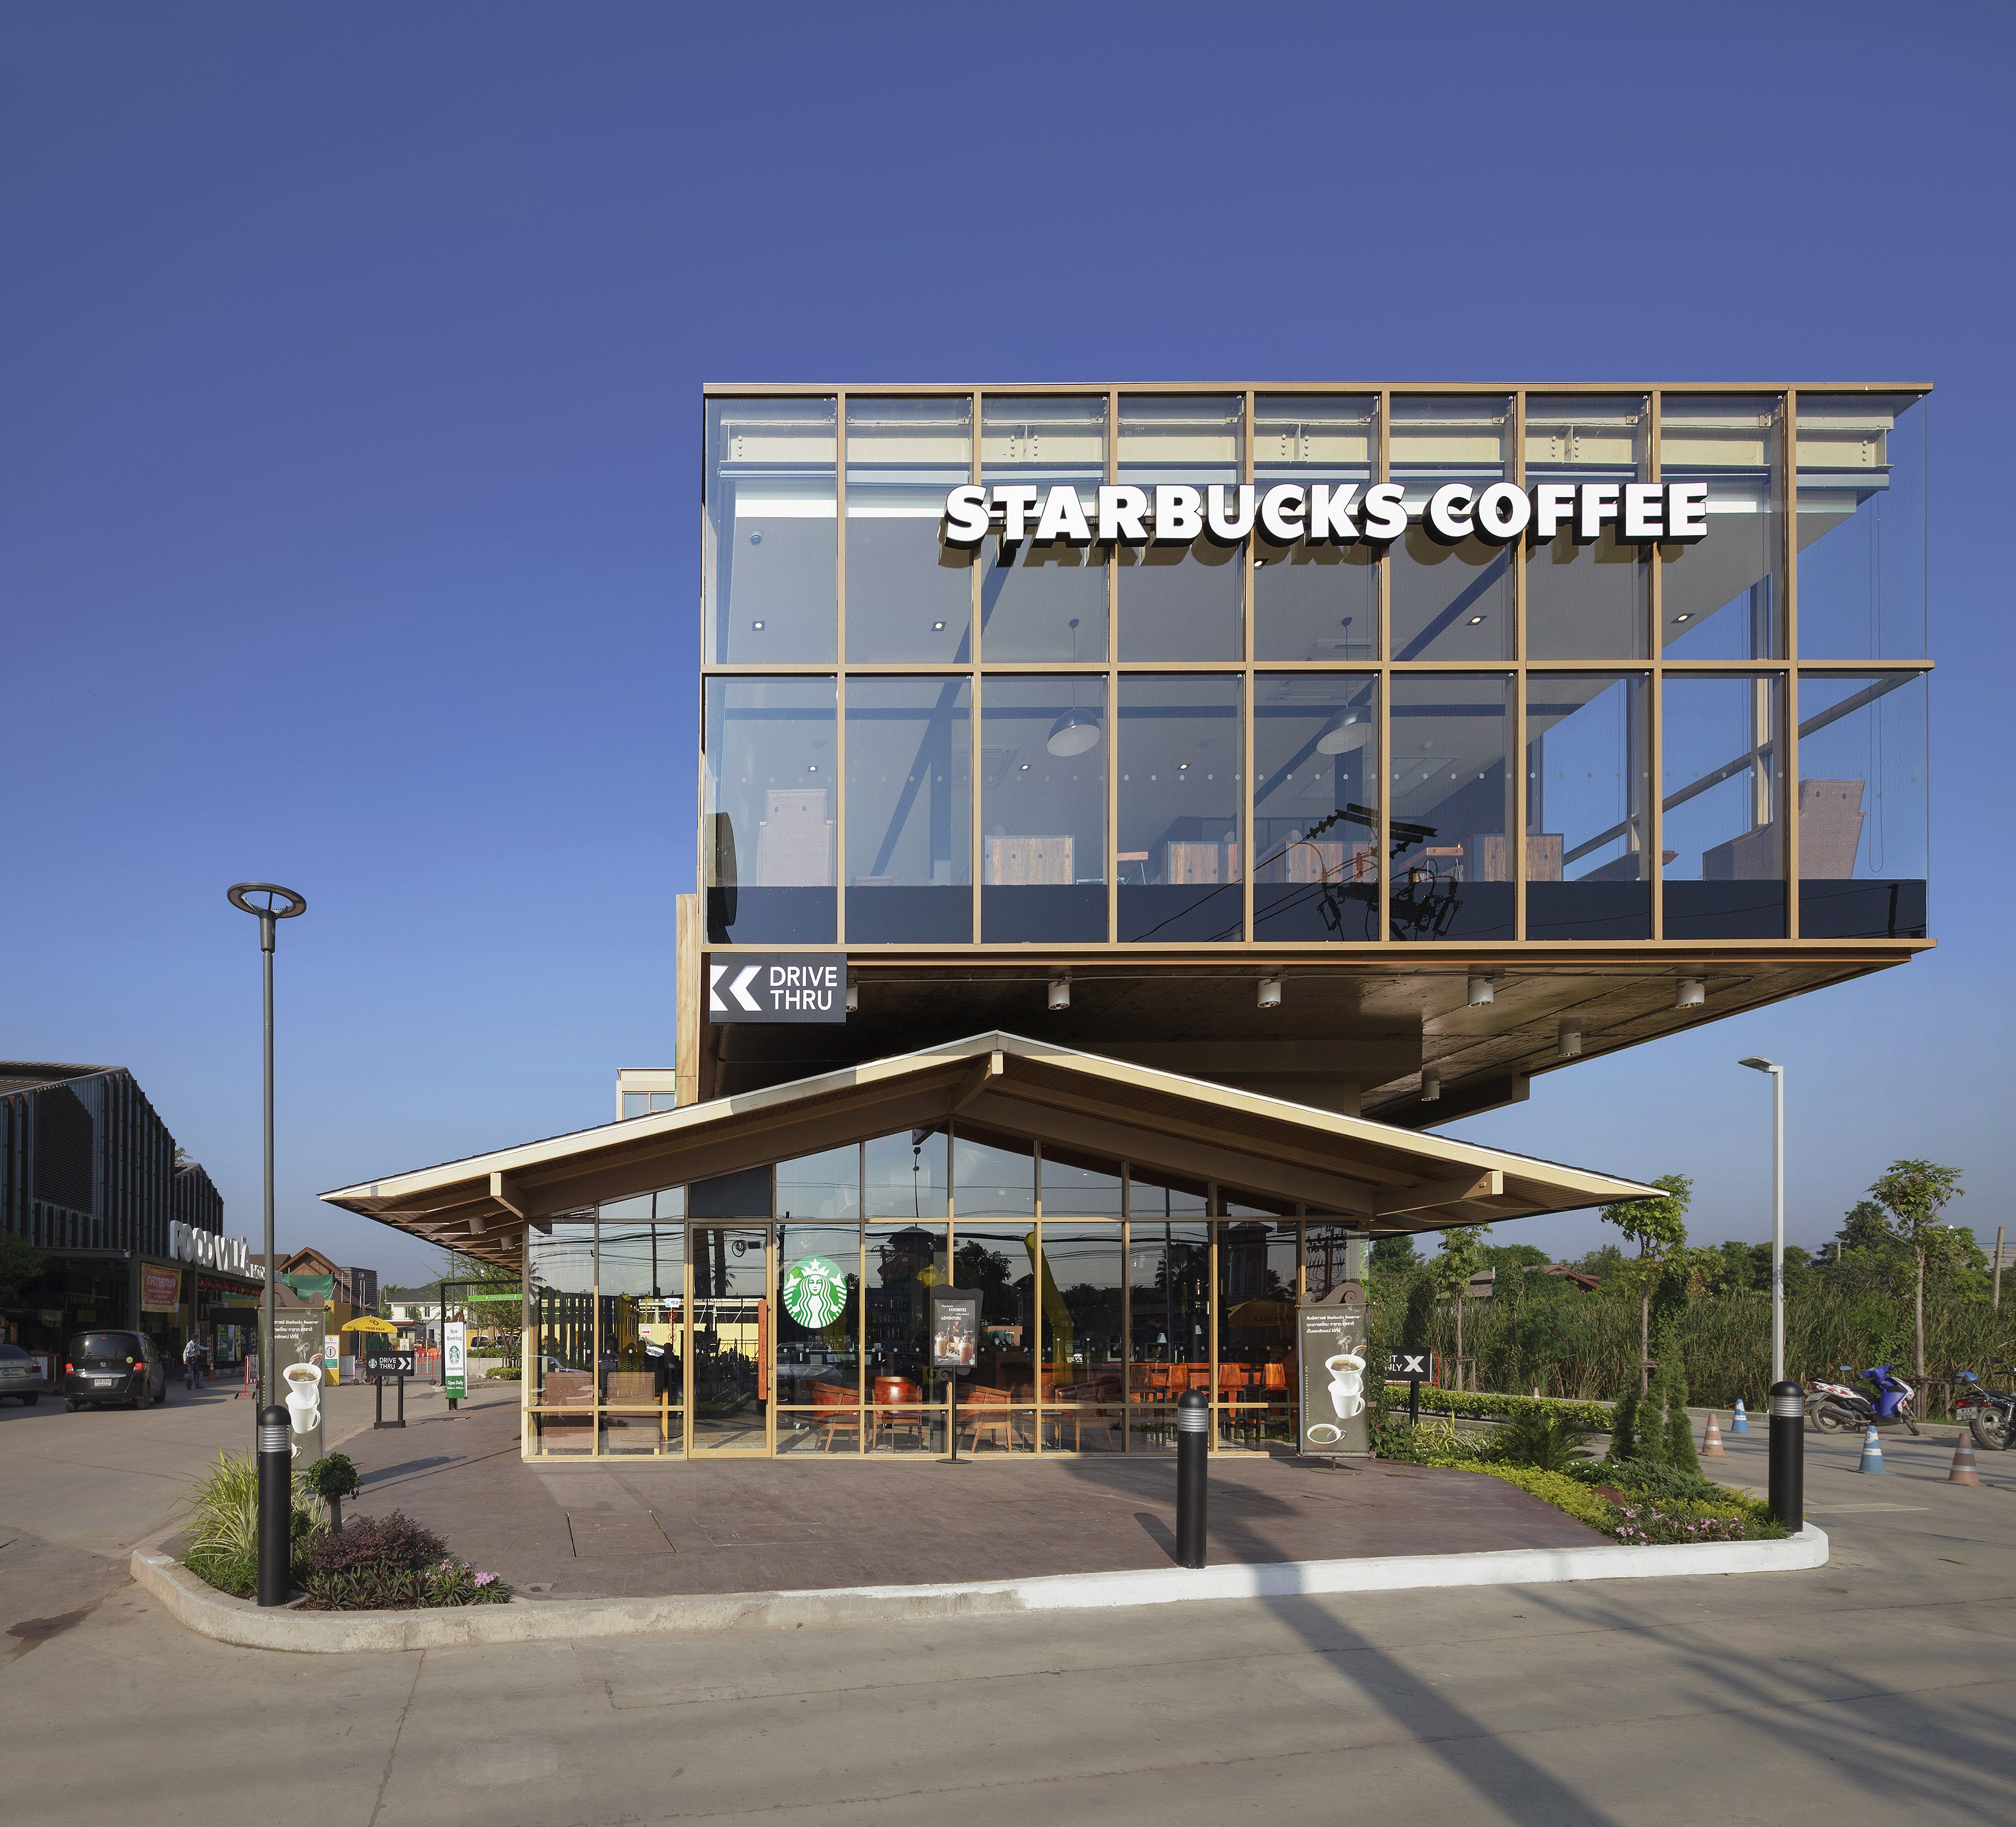 Starbucks Food Villa Is Located At Market Ratchapruek Bangkok The Building 2 Story Steel Structure Features Drive Thru Bar Seating On